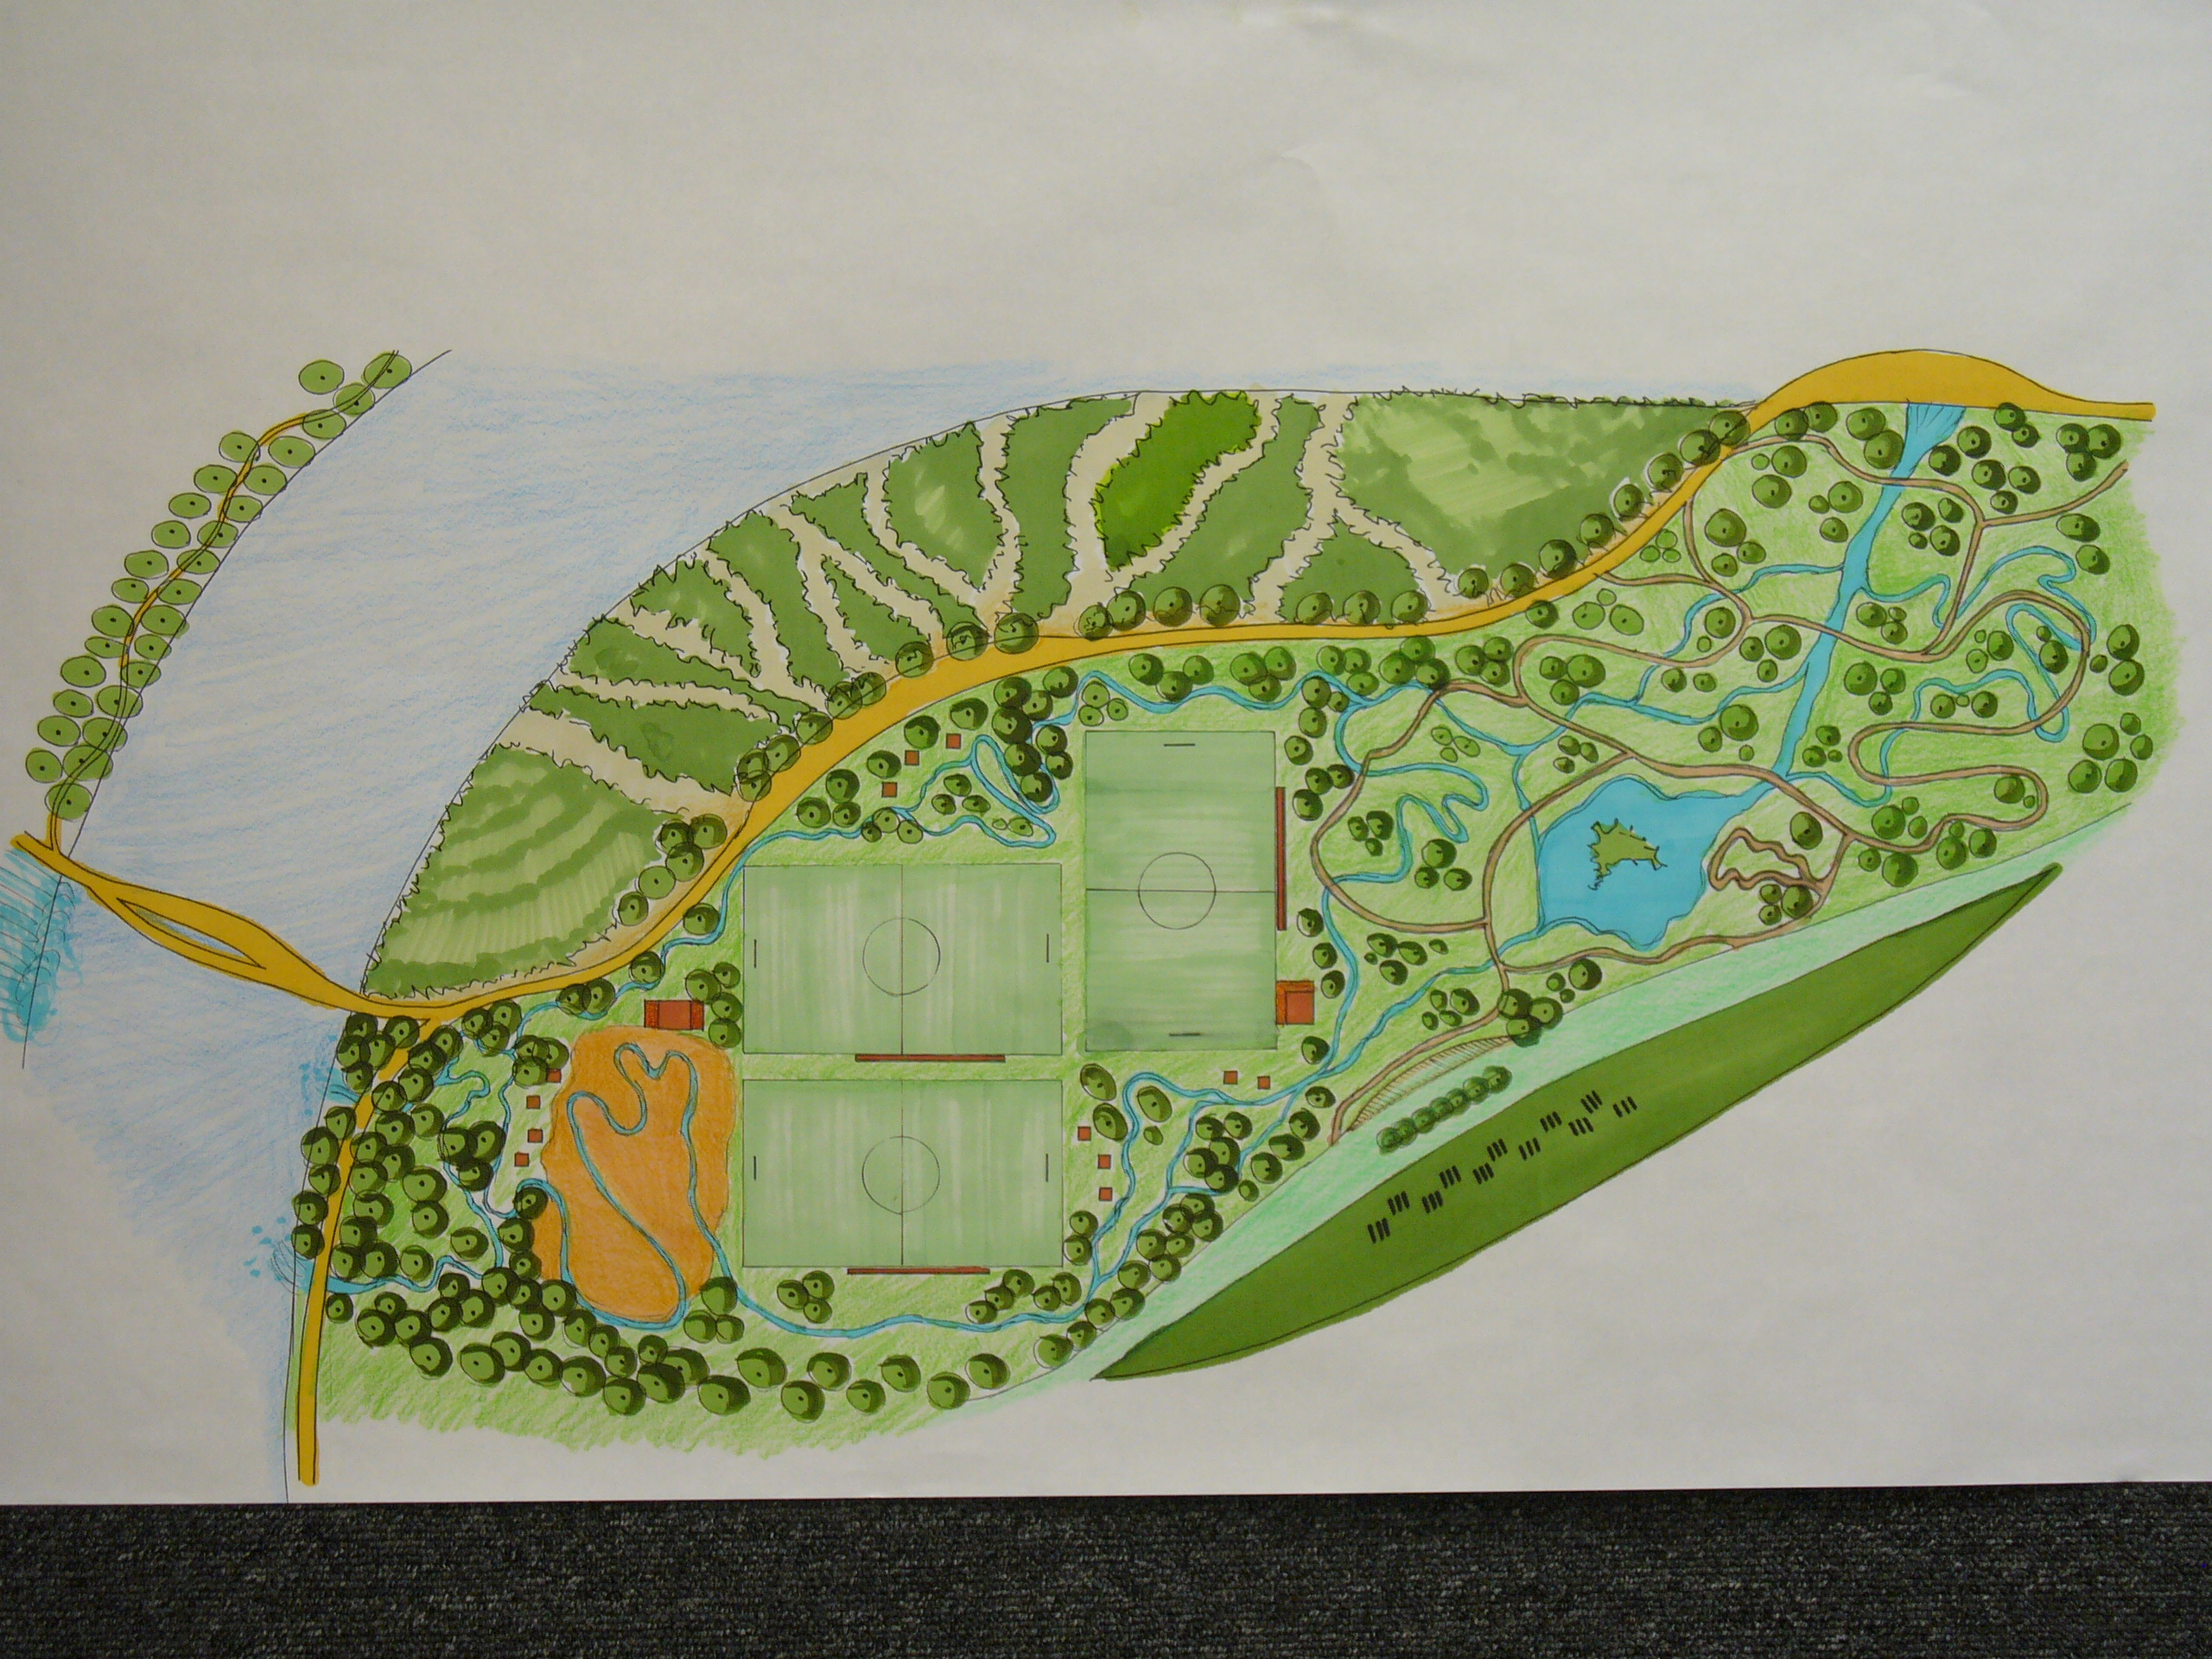 Concept and Planning of Park for Mixed-Use Community